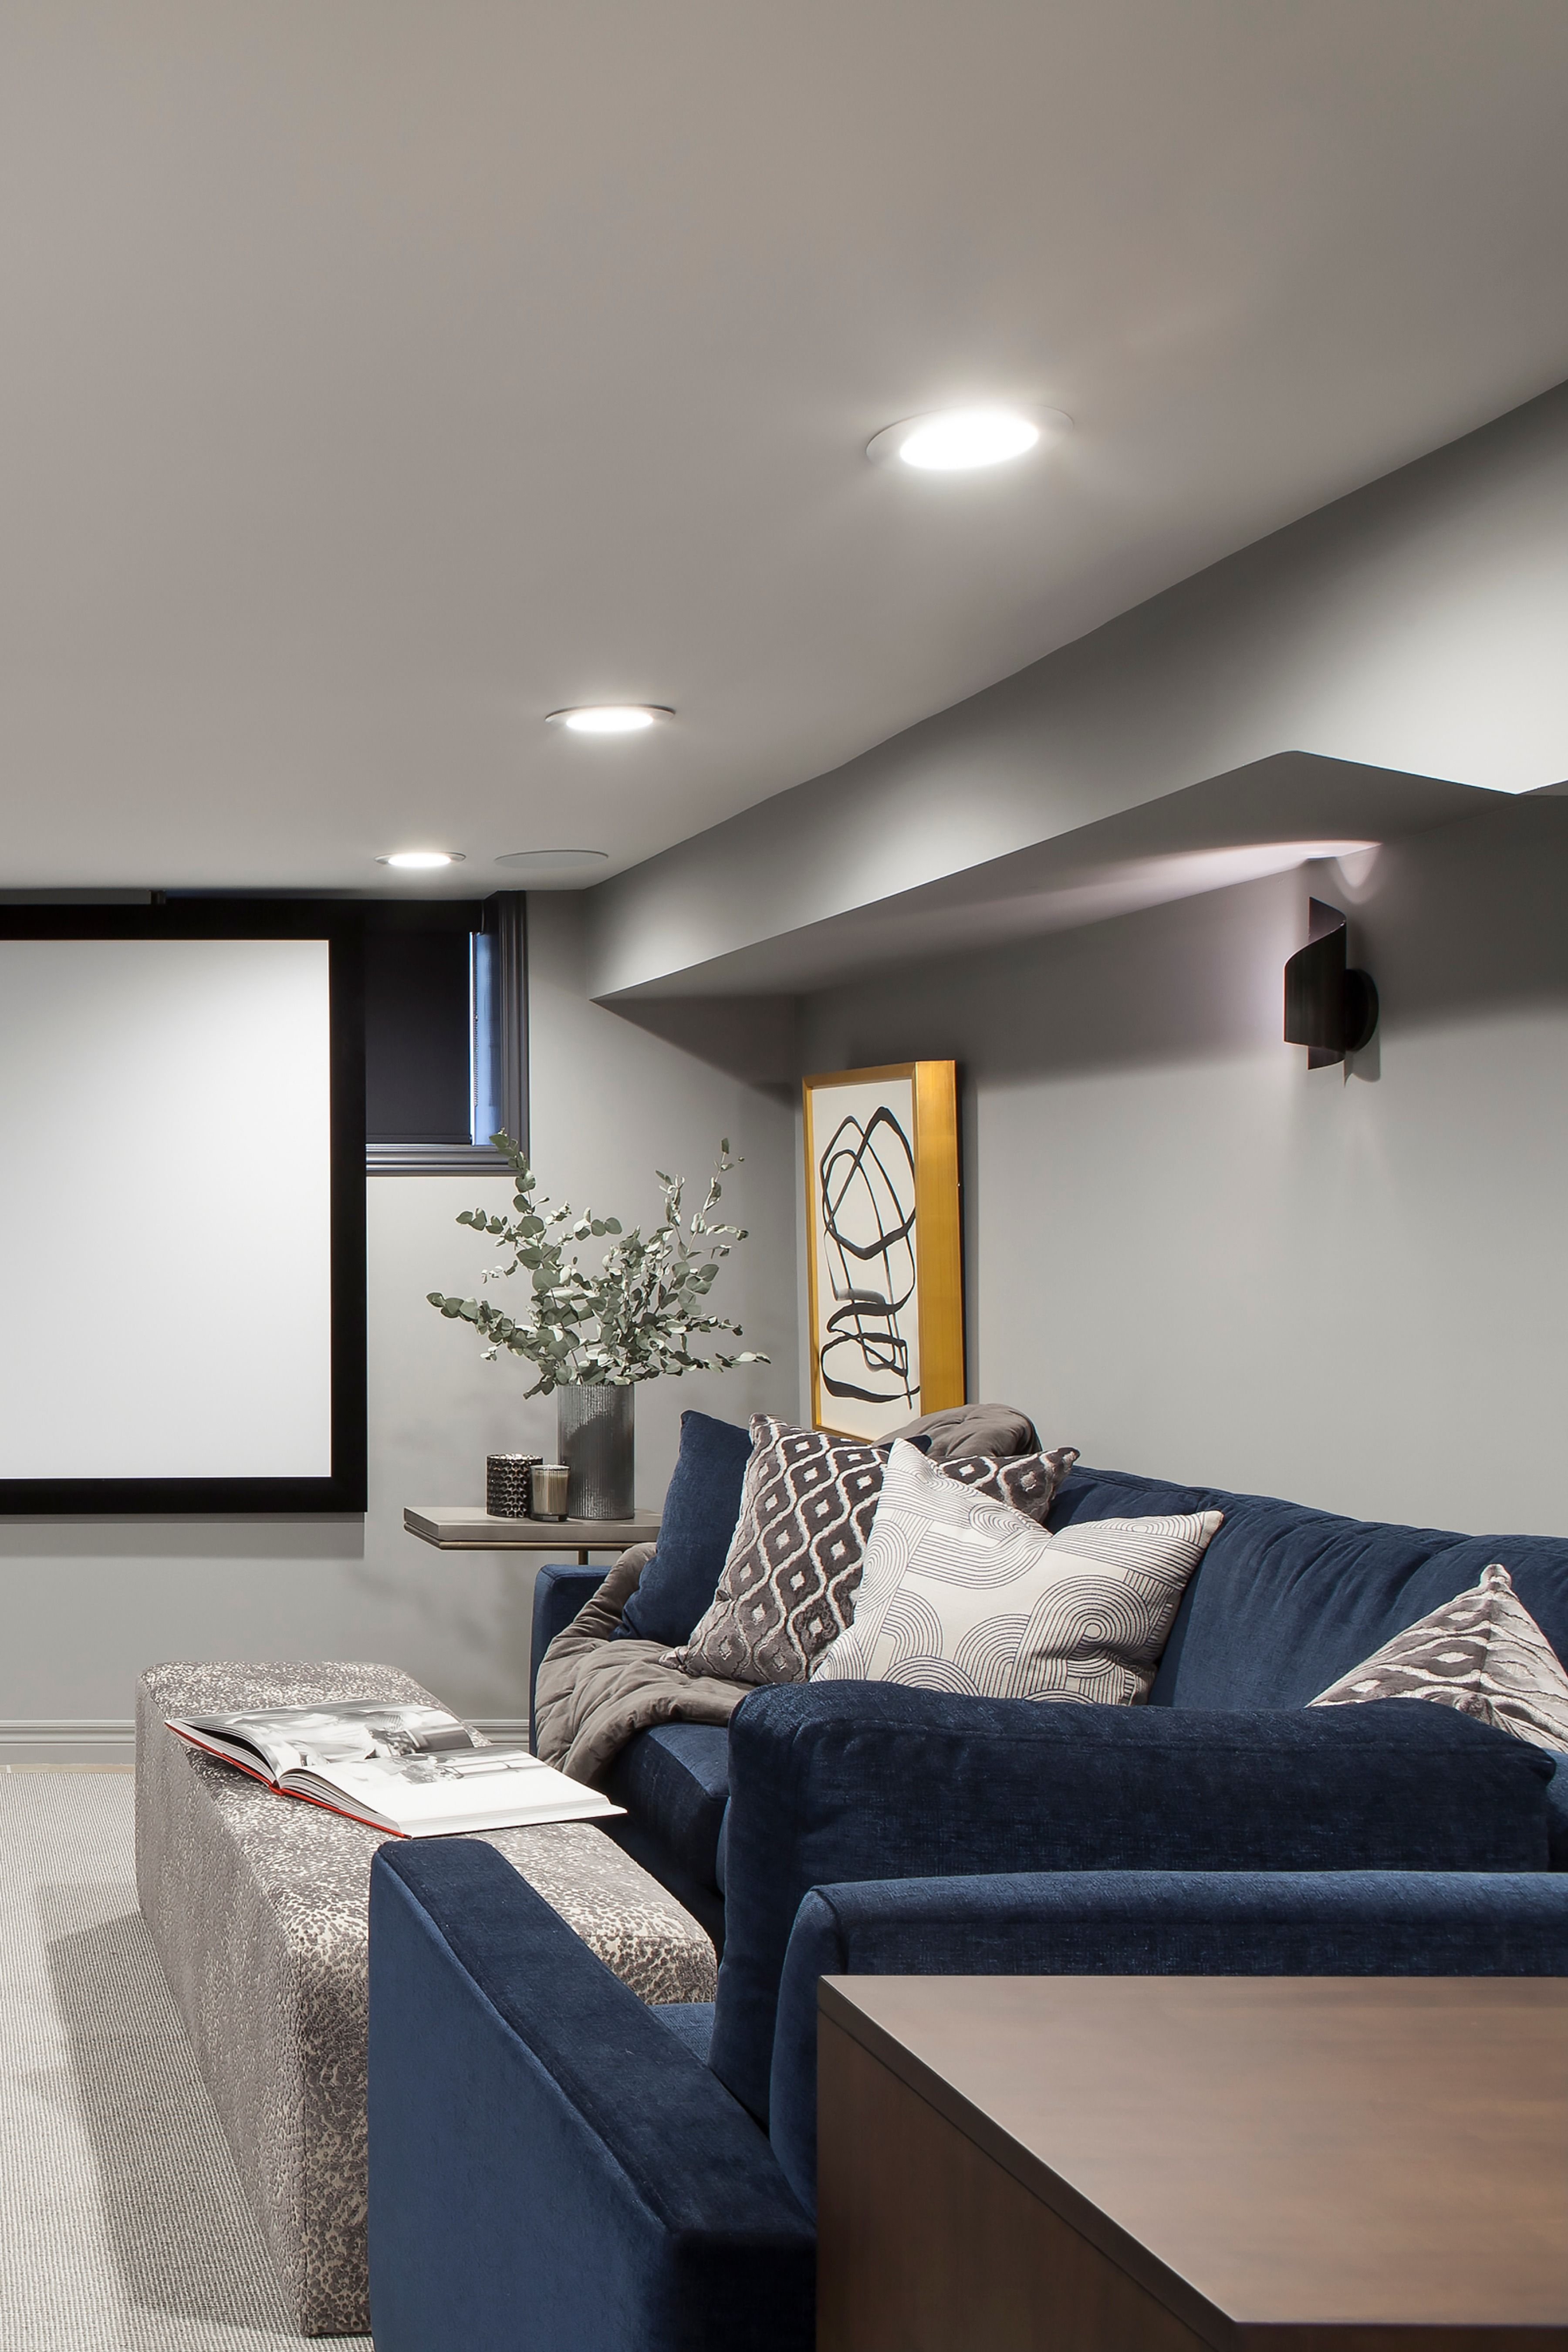 How to transform a storage basement into an entertainment